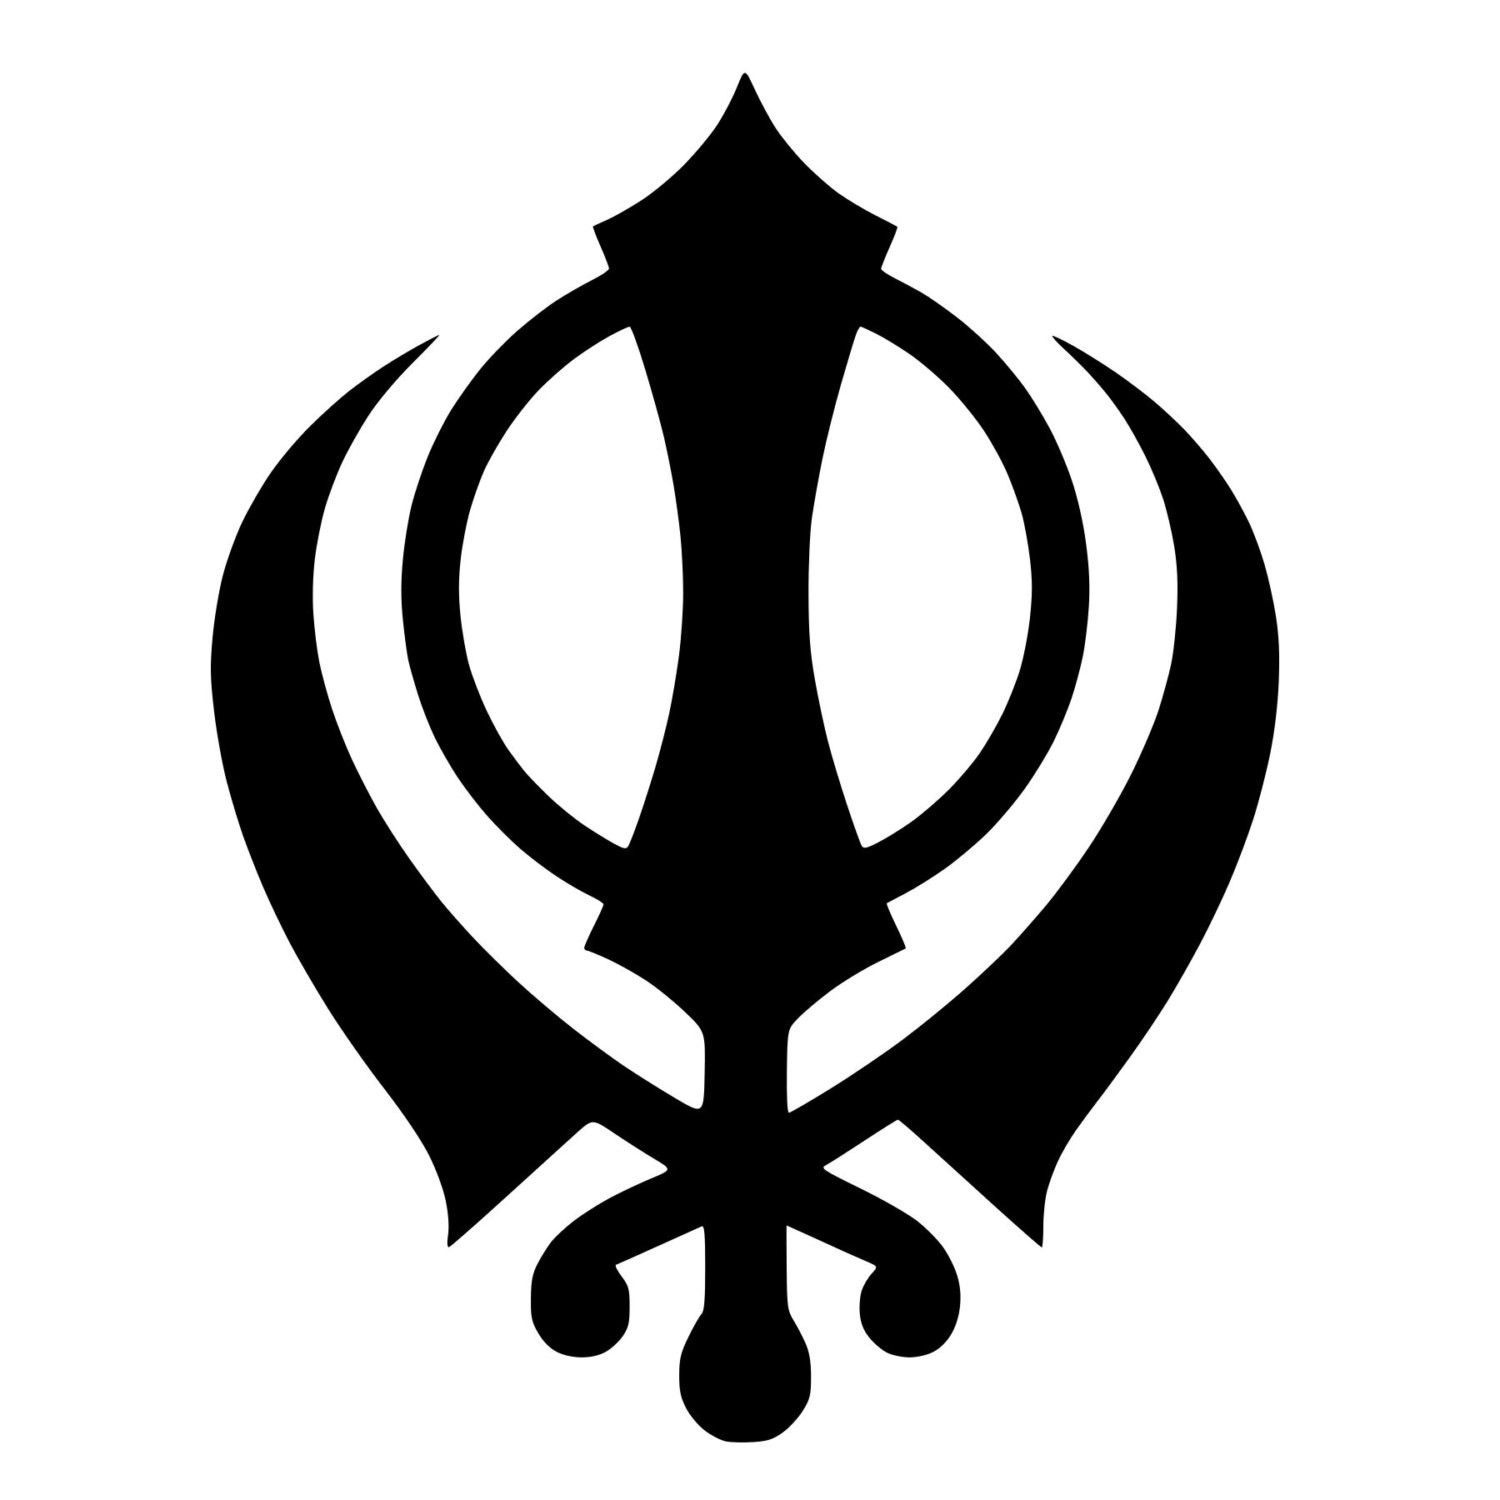 Sikh khanda sword symbol die cut decal car window wall bumper the khanda is a symbol used in sikh religion representing power and purity because of the meaning it is also used as a political symbol biocorpaavc Choice Image